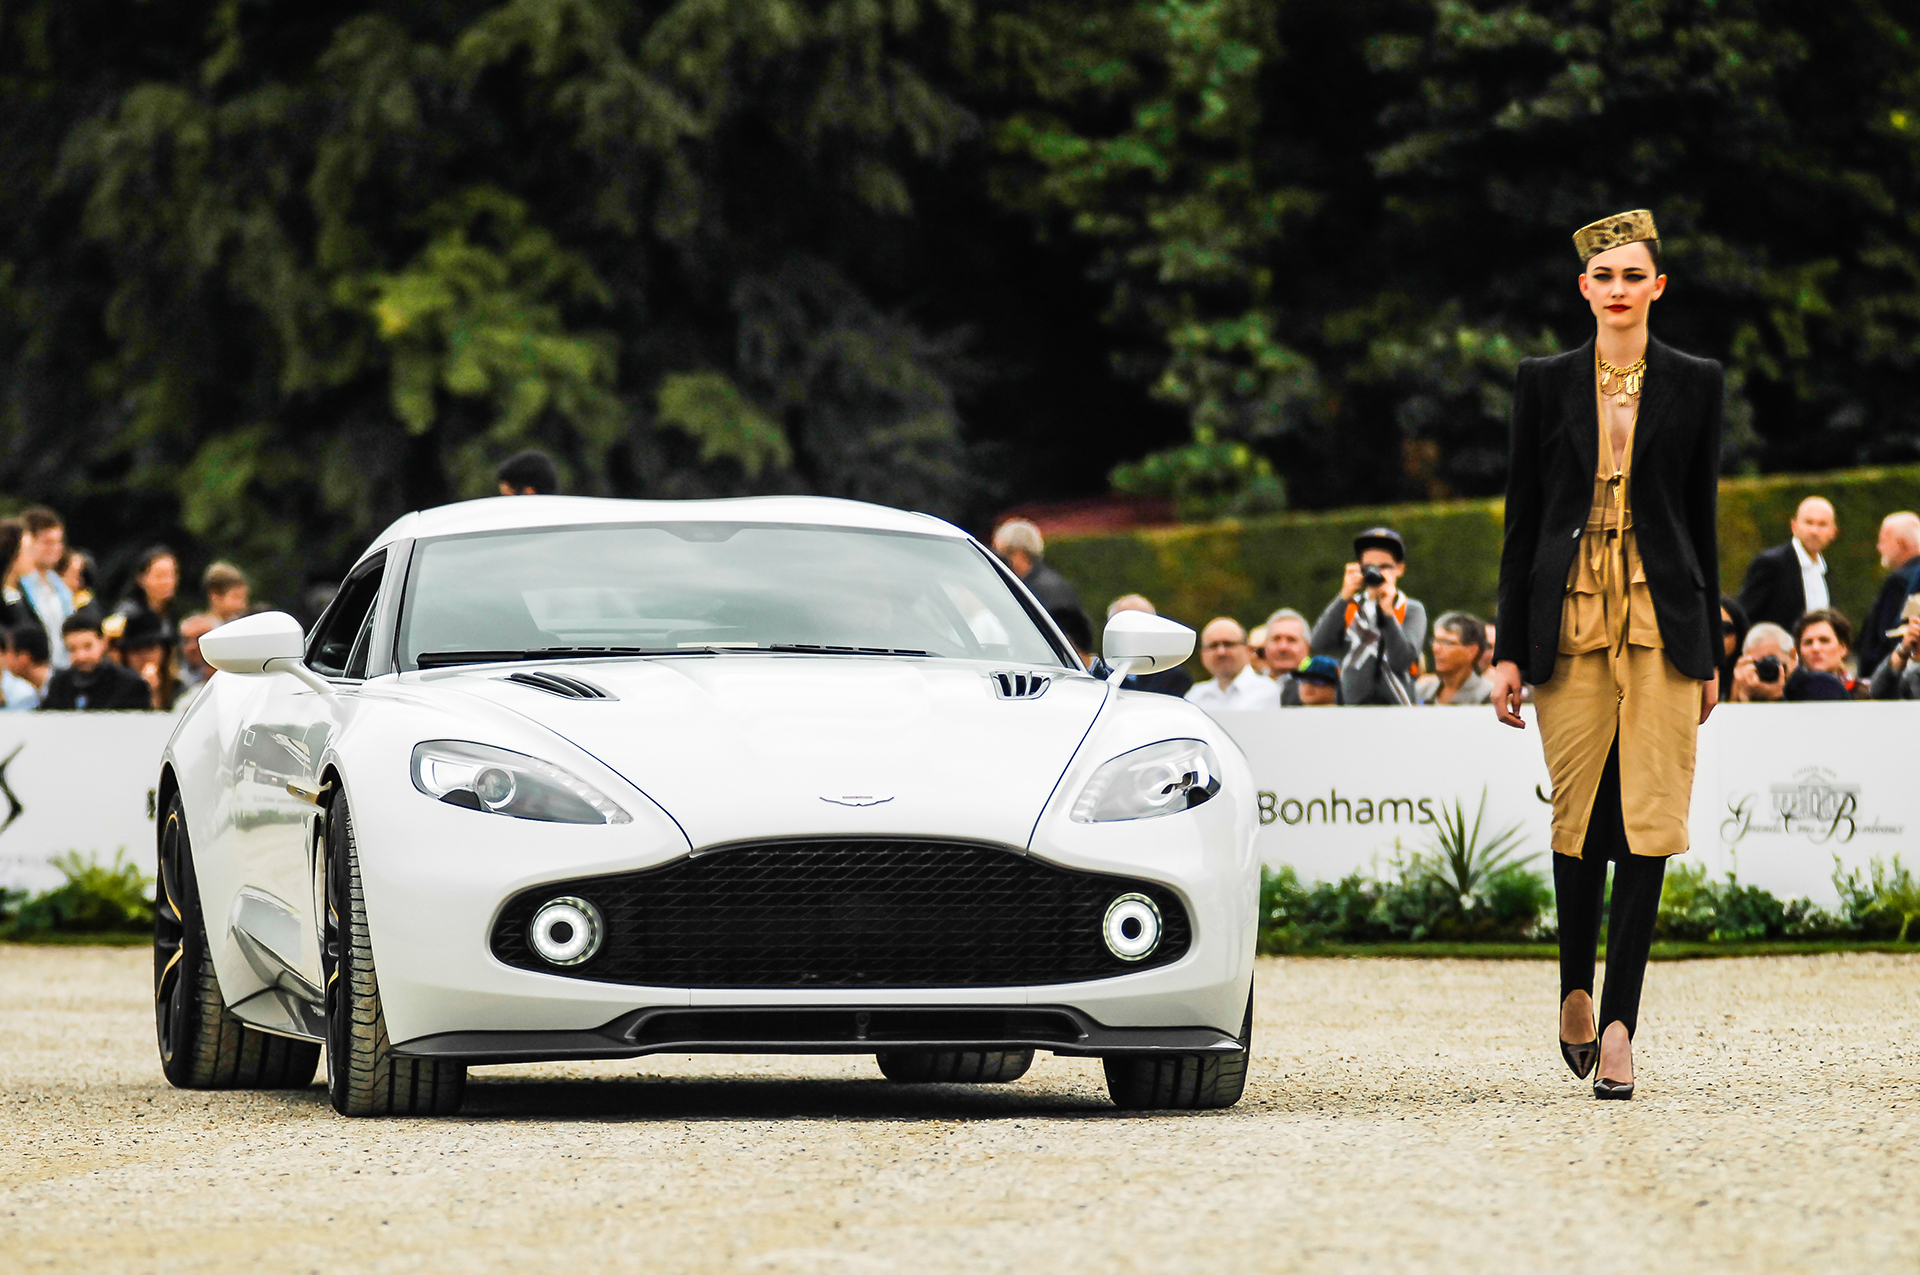 Chantilly 2016 - Aston Martin Vanquish Zagato Coupé - fashion Jean-Paul Gaultier - photo by Pierre-Yves Riom